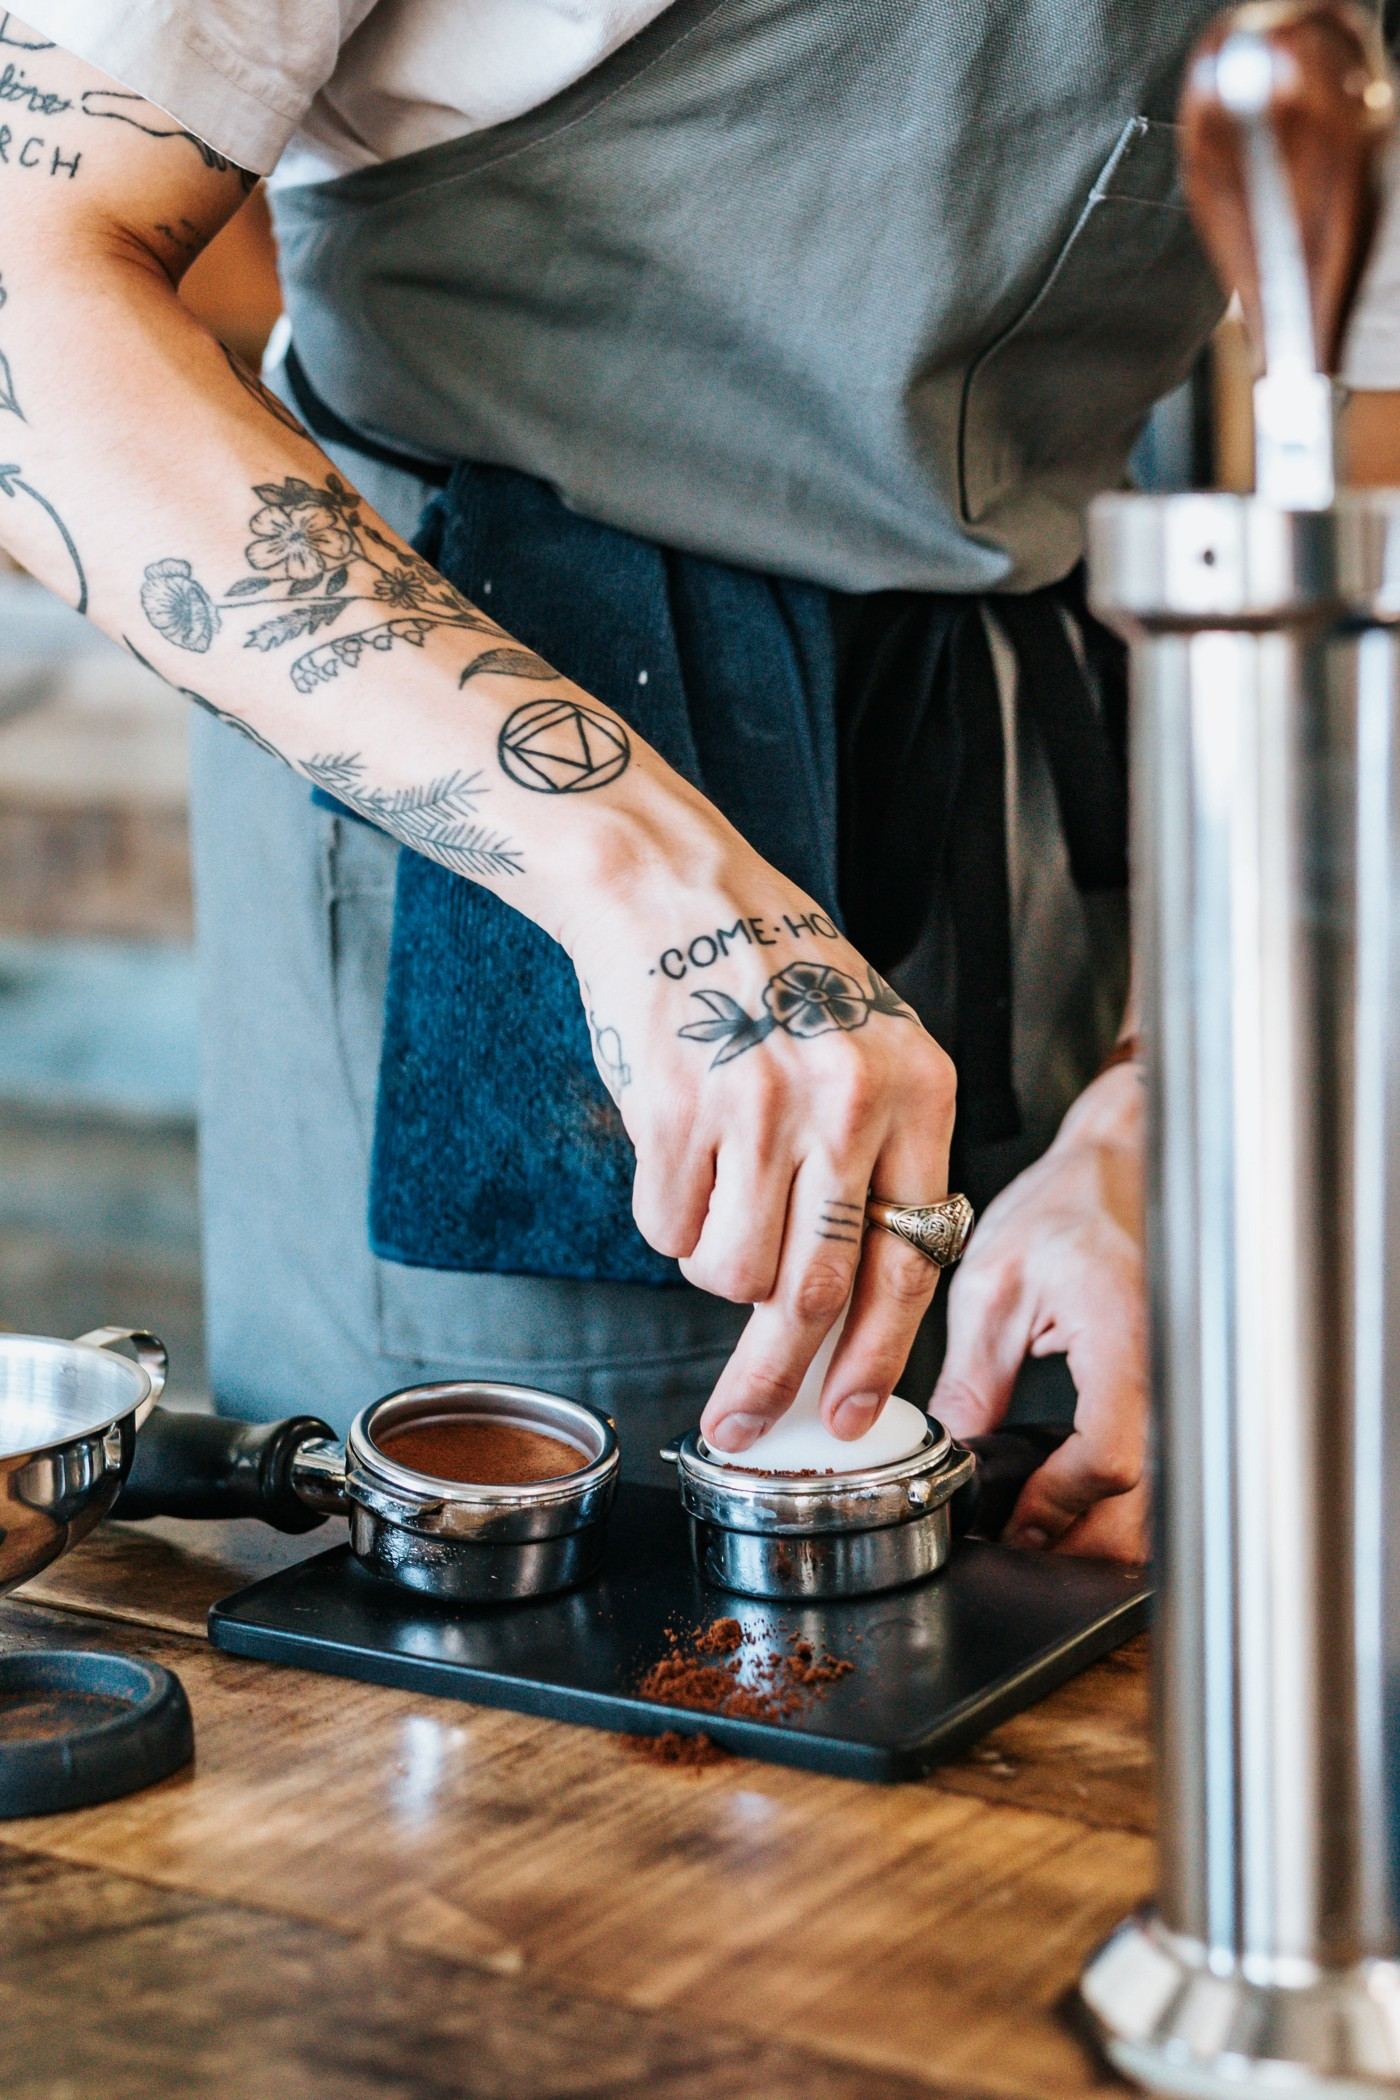 Person with tattoo, making coffee